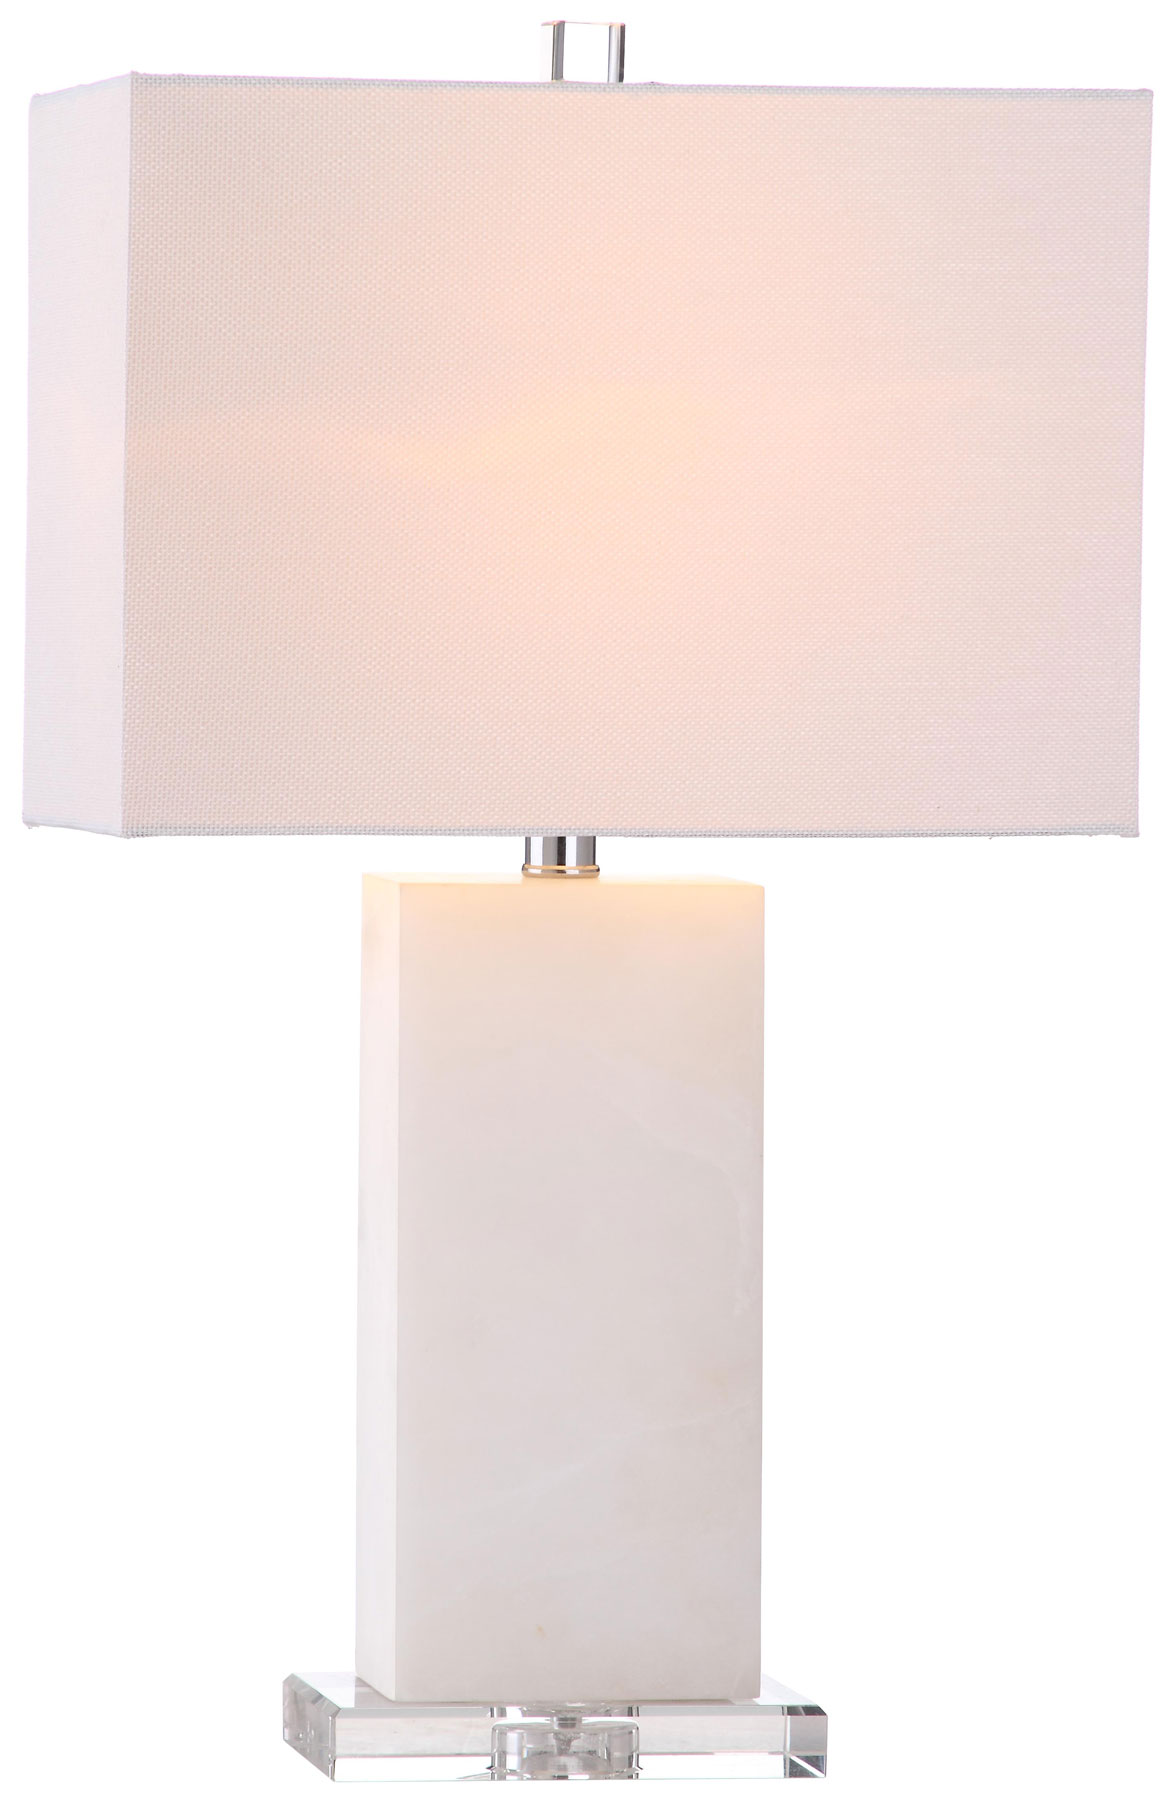 table lamps lighting safavieh room essentials accent instructions share this product sofa with charging station ikea small storage pink chandelier lamp threshold marble coffee